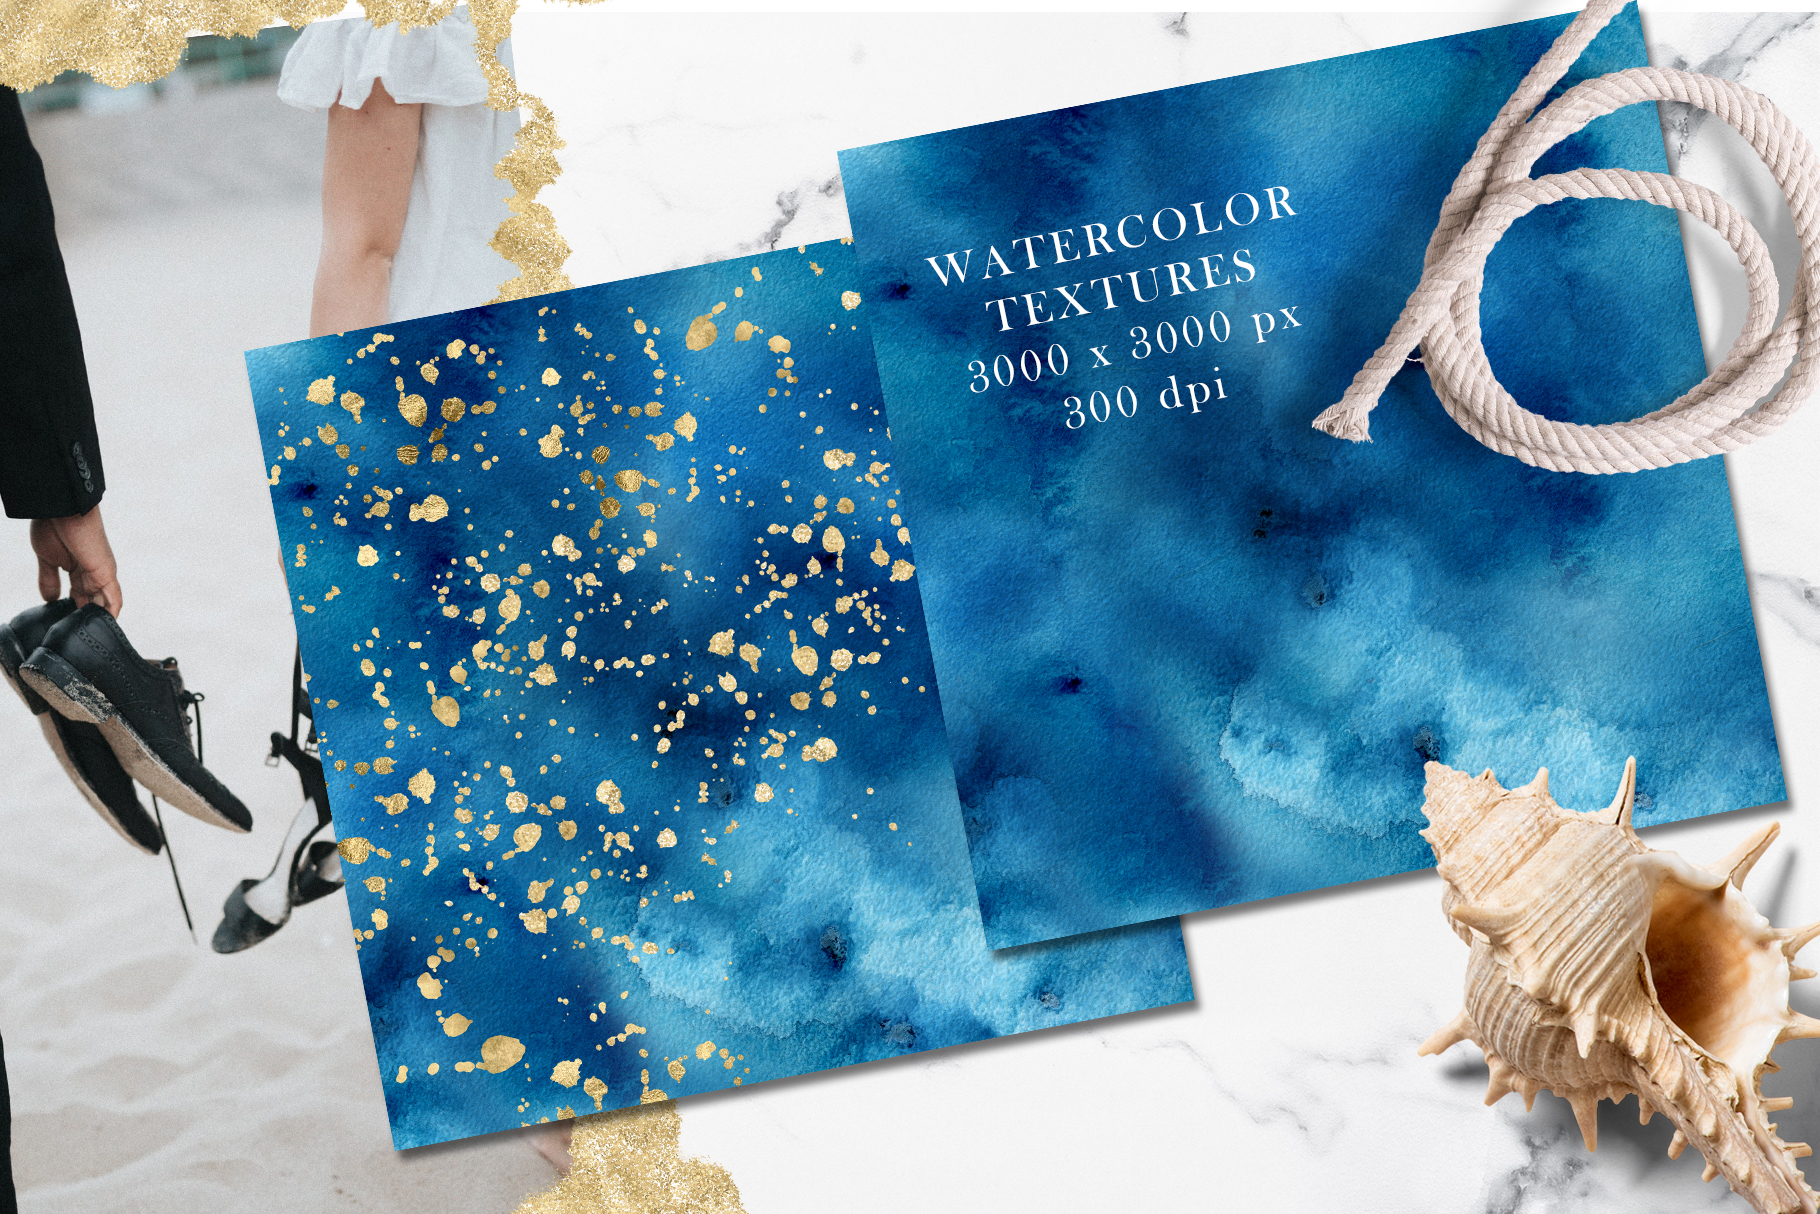 Ocean wedding invitations suit example image 4